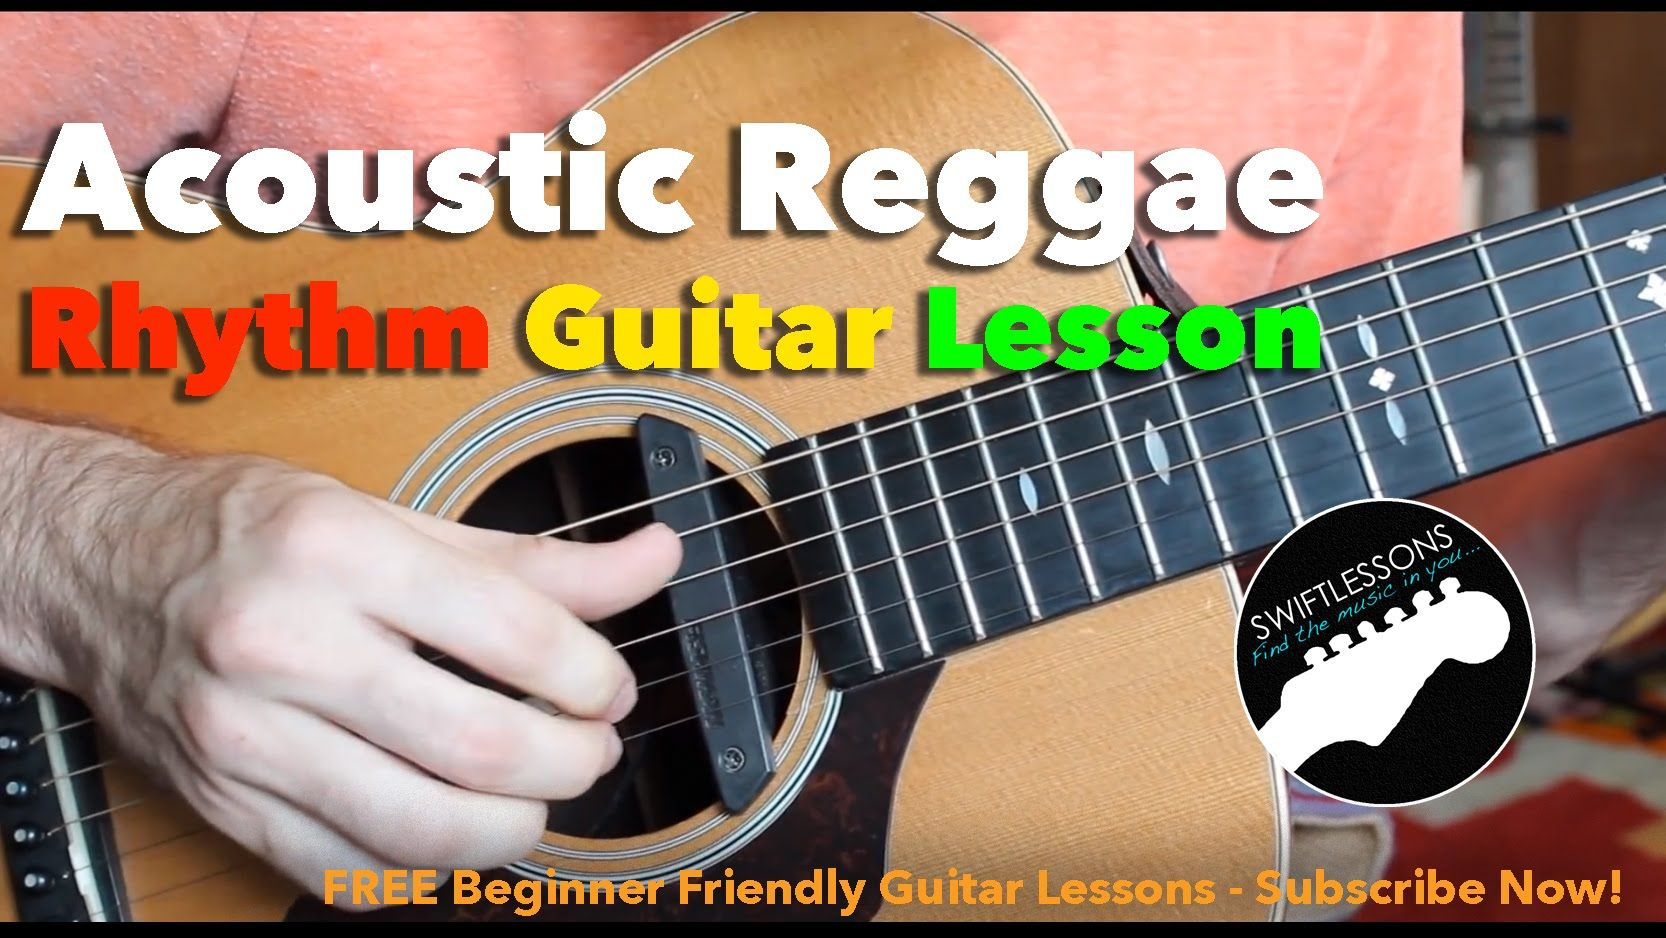 Acoustic Reggae Guitar Lesson How To Play A Reggae Guitar Rhythm Guitar Lessons Basic Guitar Lessons Guitar Lessons Tutorials